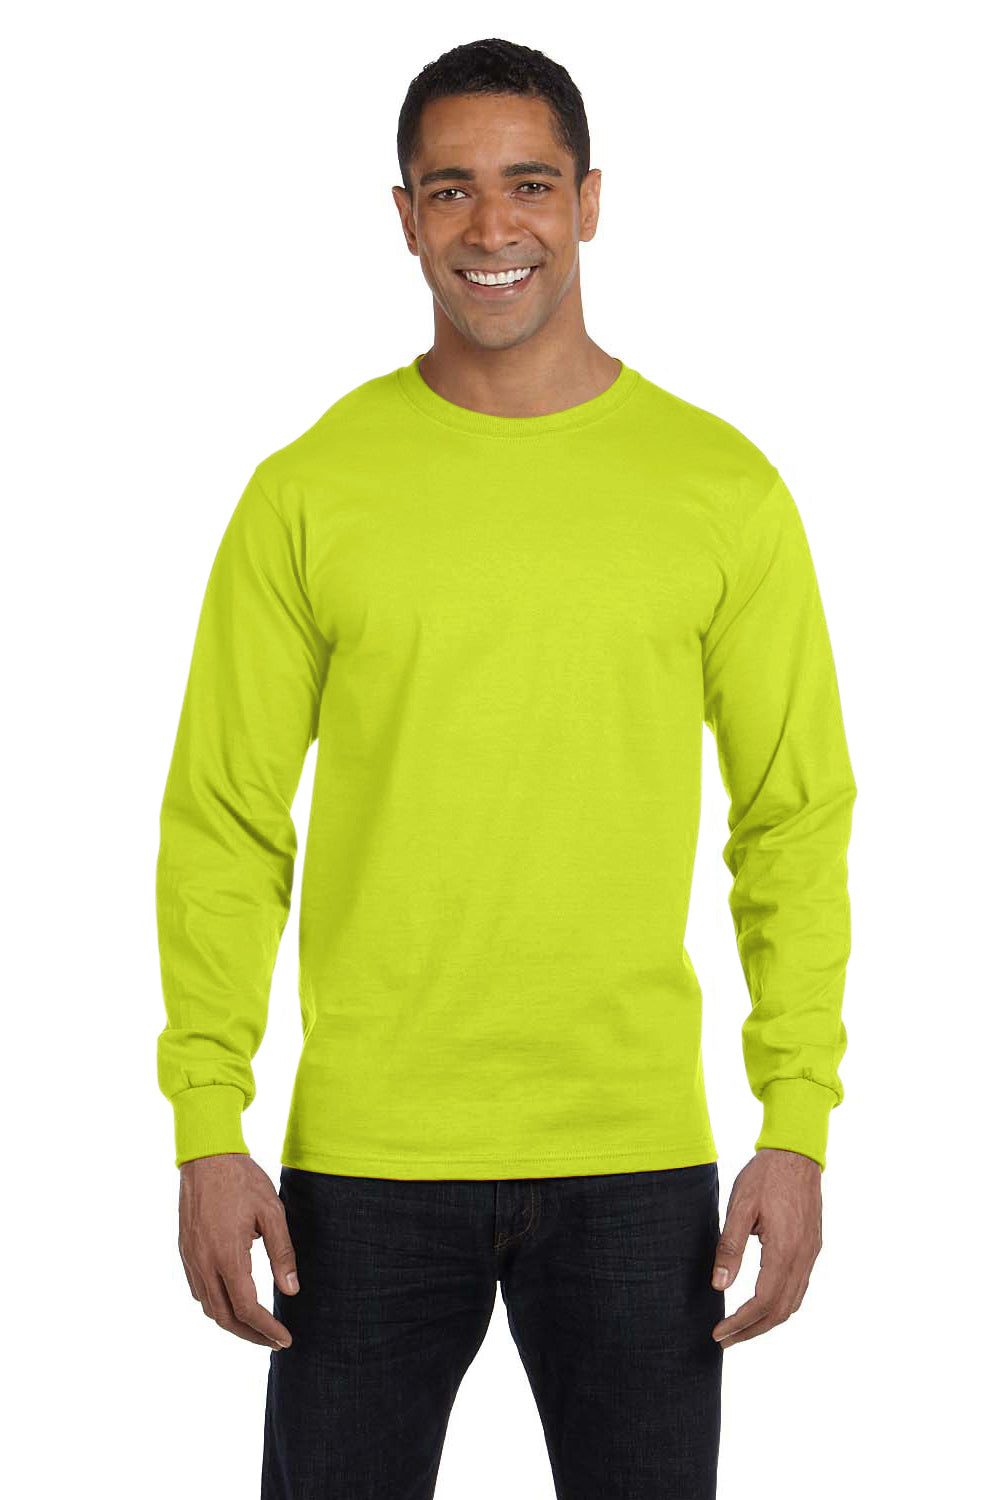 Gildan G840 Mens DryBlend Moisture Wicking Long Sleeve Crewneck T-Shirt Safety Green Front